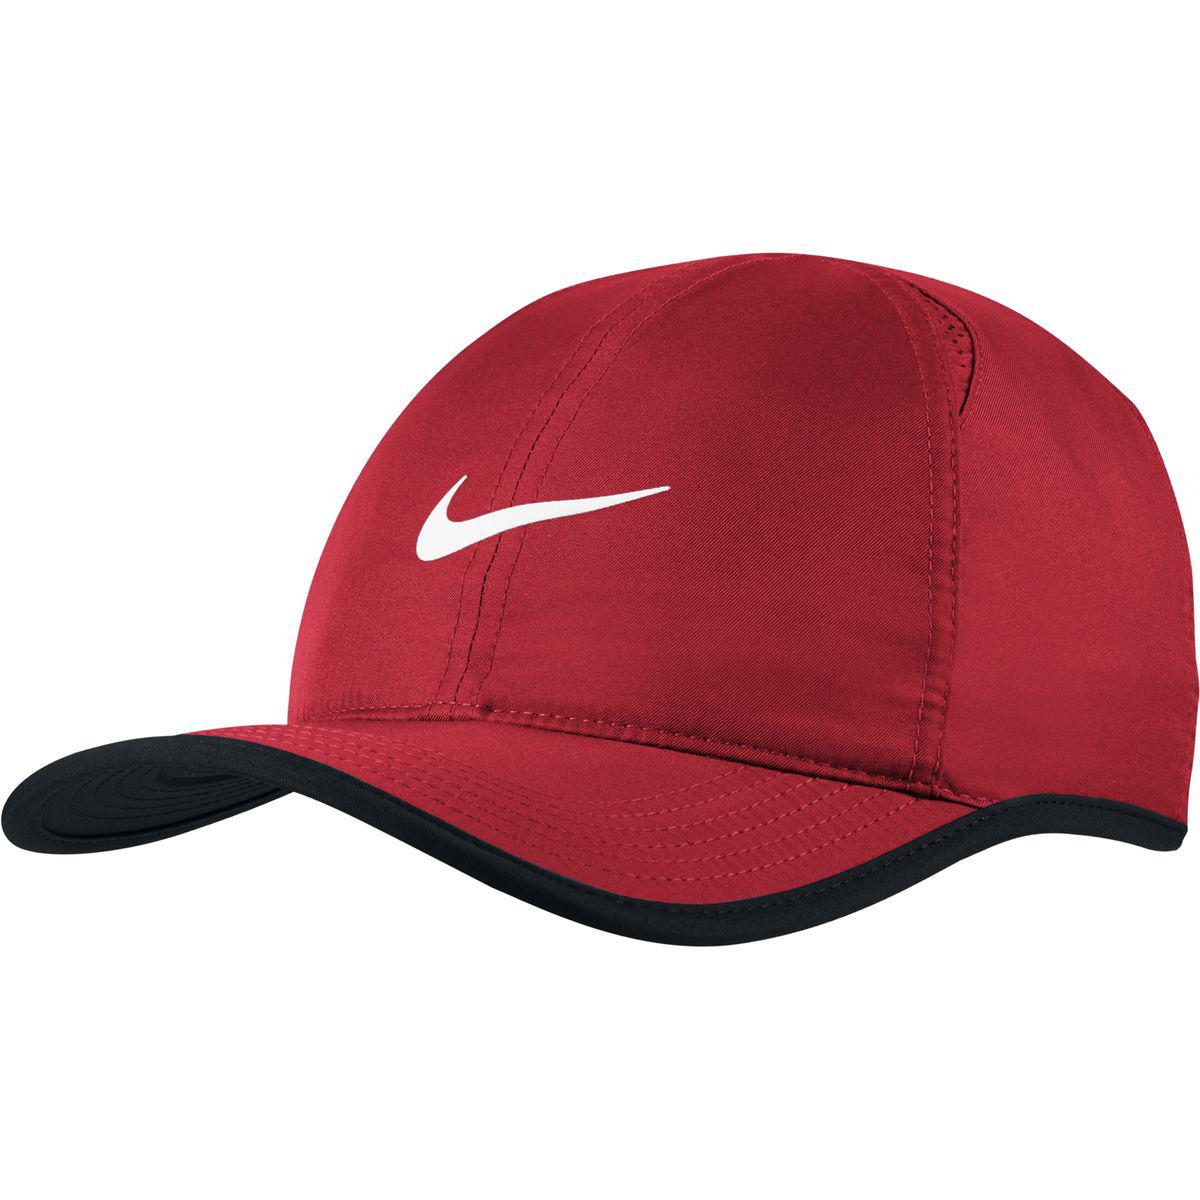 Lyst - Nike Aerobill Featherlight Running Hat in Red for Men 238a22c6ebf